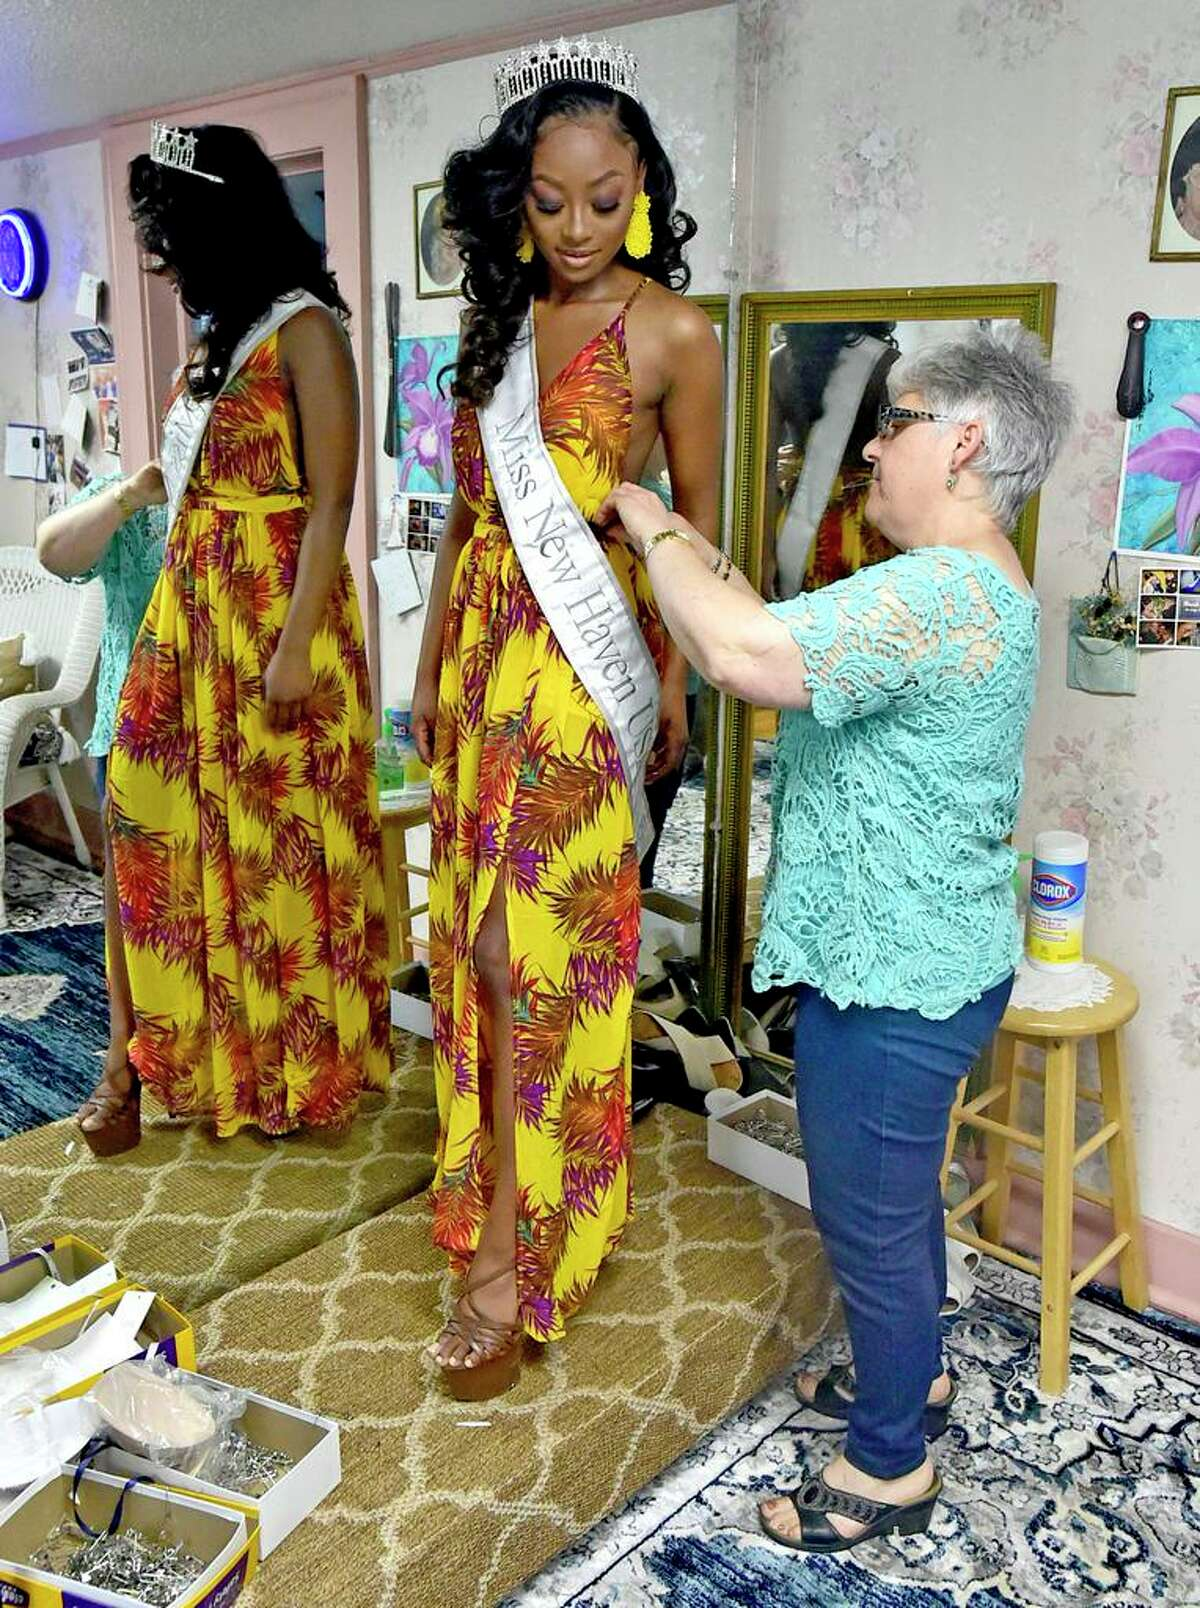 Branford, Connecticut - Wednesday, May 12, 2021: Seamstress Lucia Camarda, owner of Lucy Tailors of Branford, fits a competition dress for Miss New Haven USA , Khadesia Walker of New Haven for the Miss CT USA competition June 4-6.